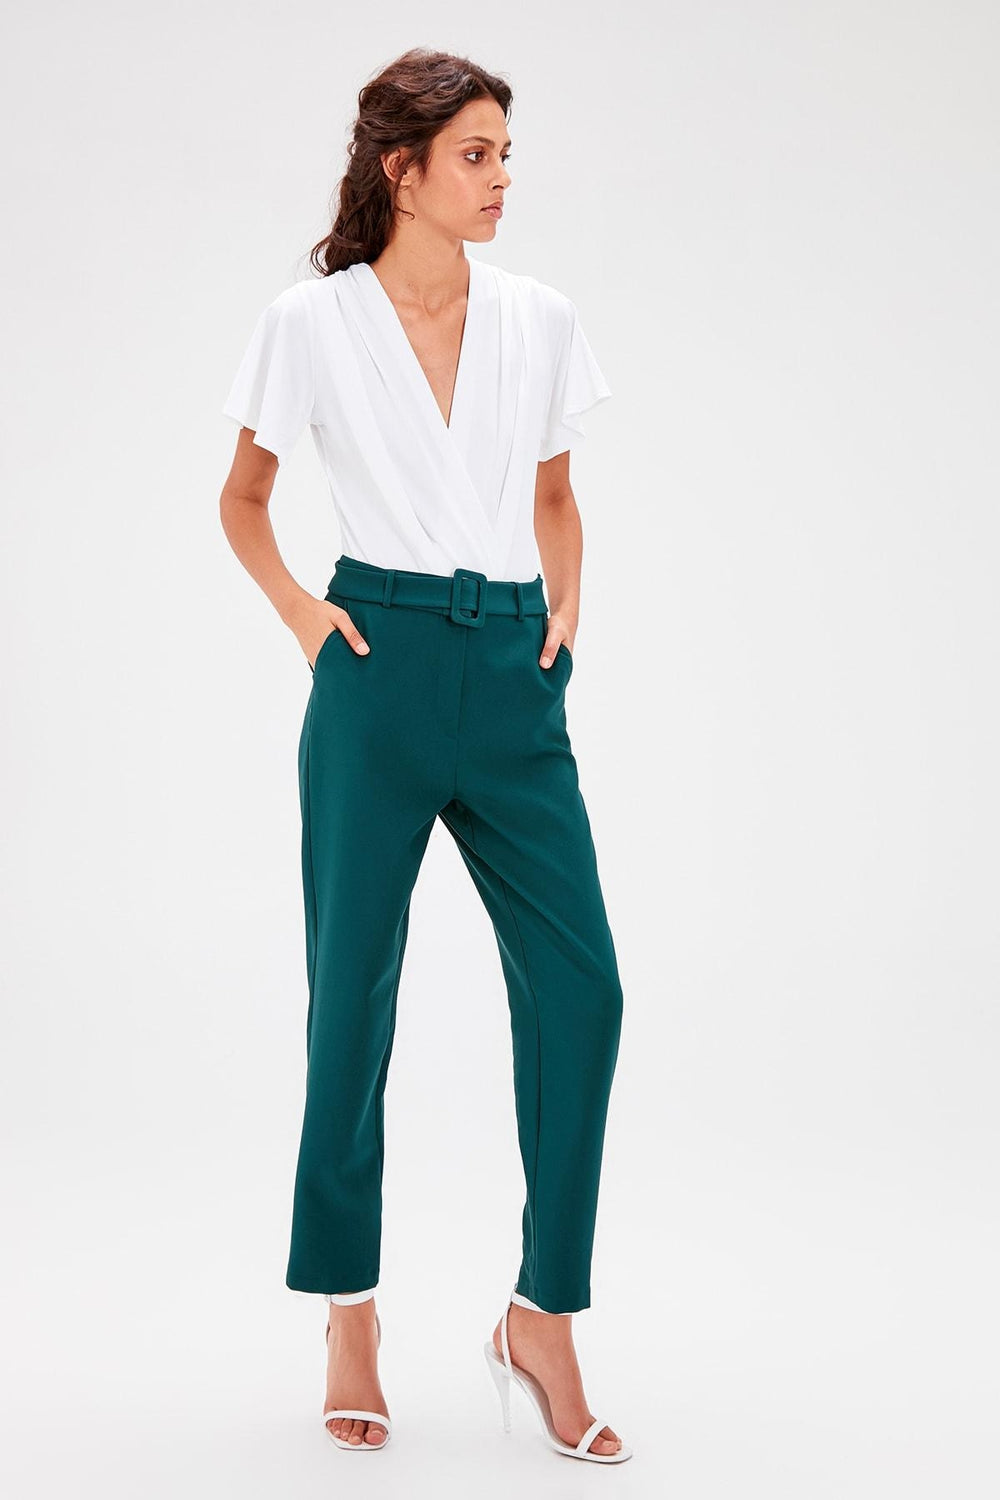 Emerald green Belt Detail Pants - Top Maxy